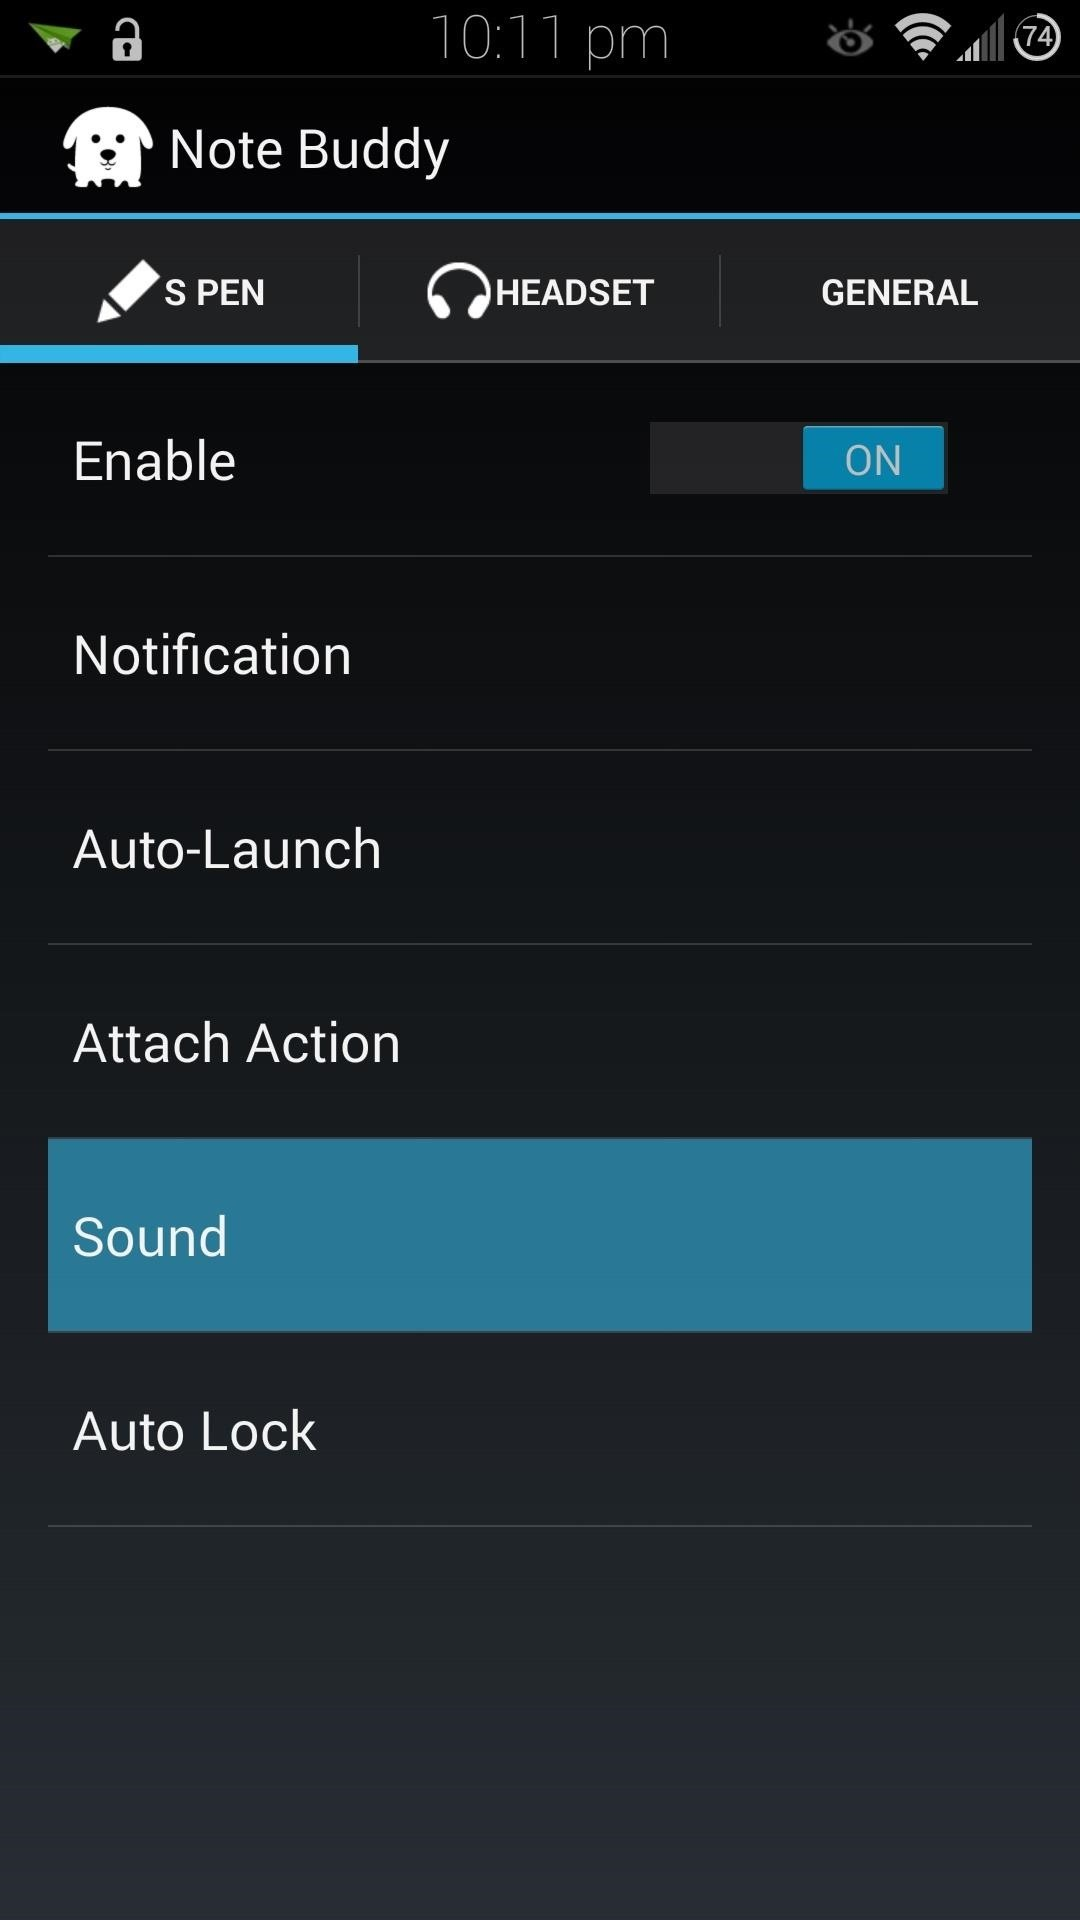 The Ultimate S Pen Customization Tool for Your Galaxy Note 3